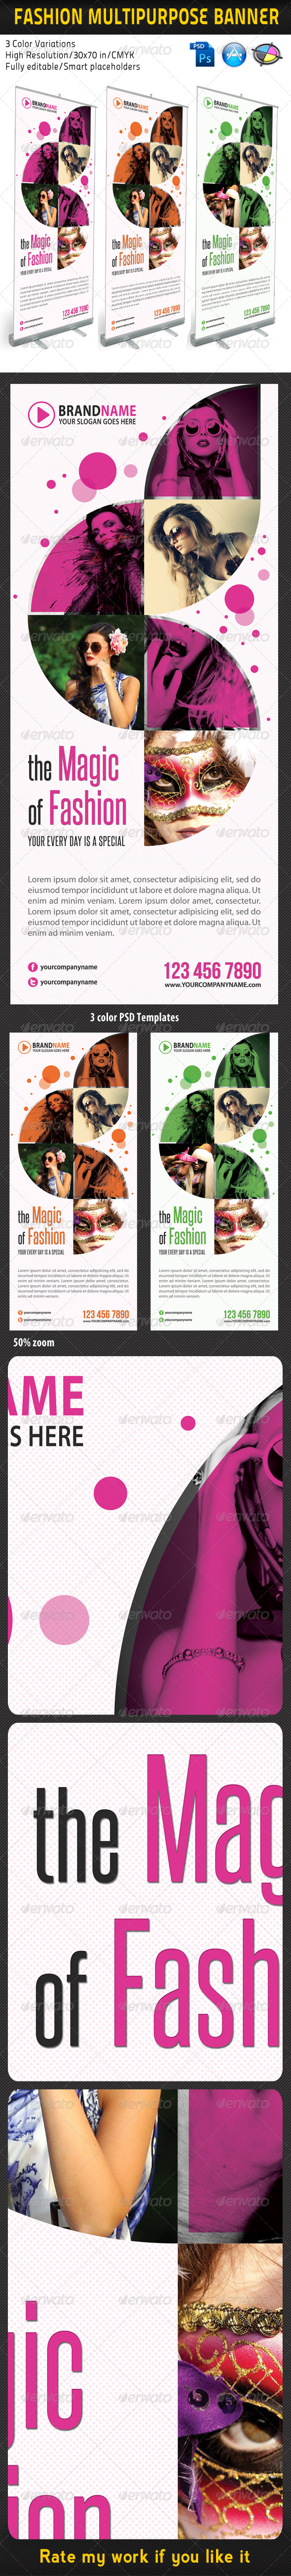 Fashion Multipurpose Banner Template 05 - Signage Print Templates